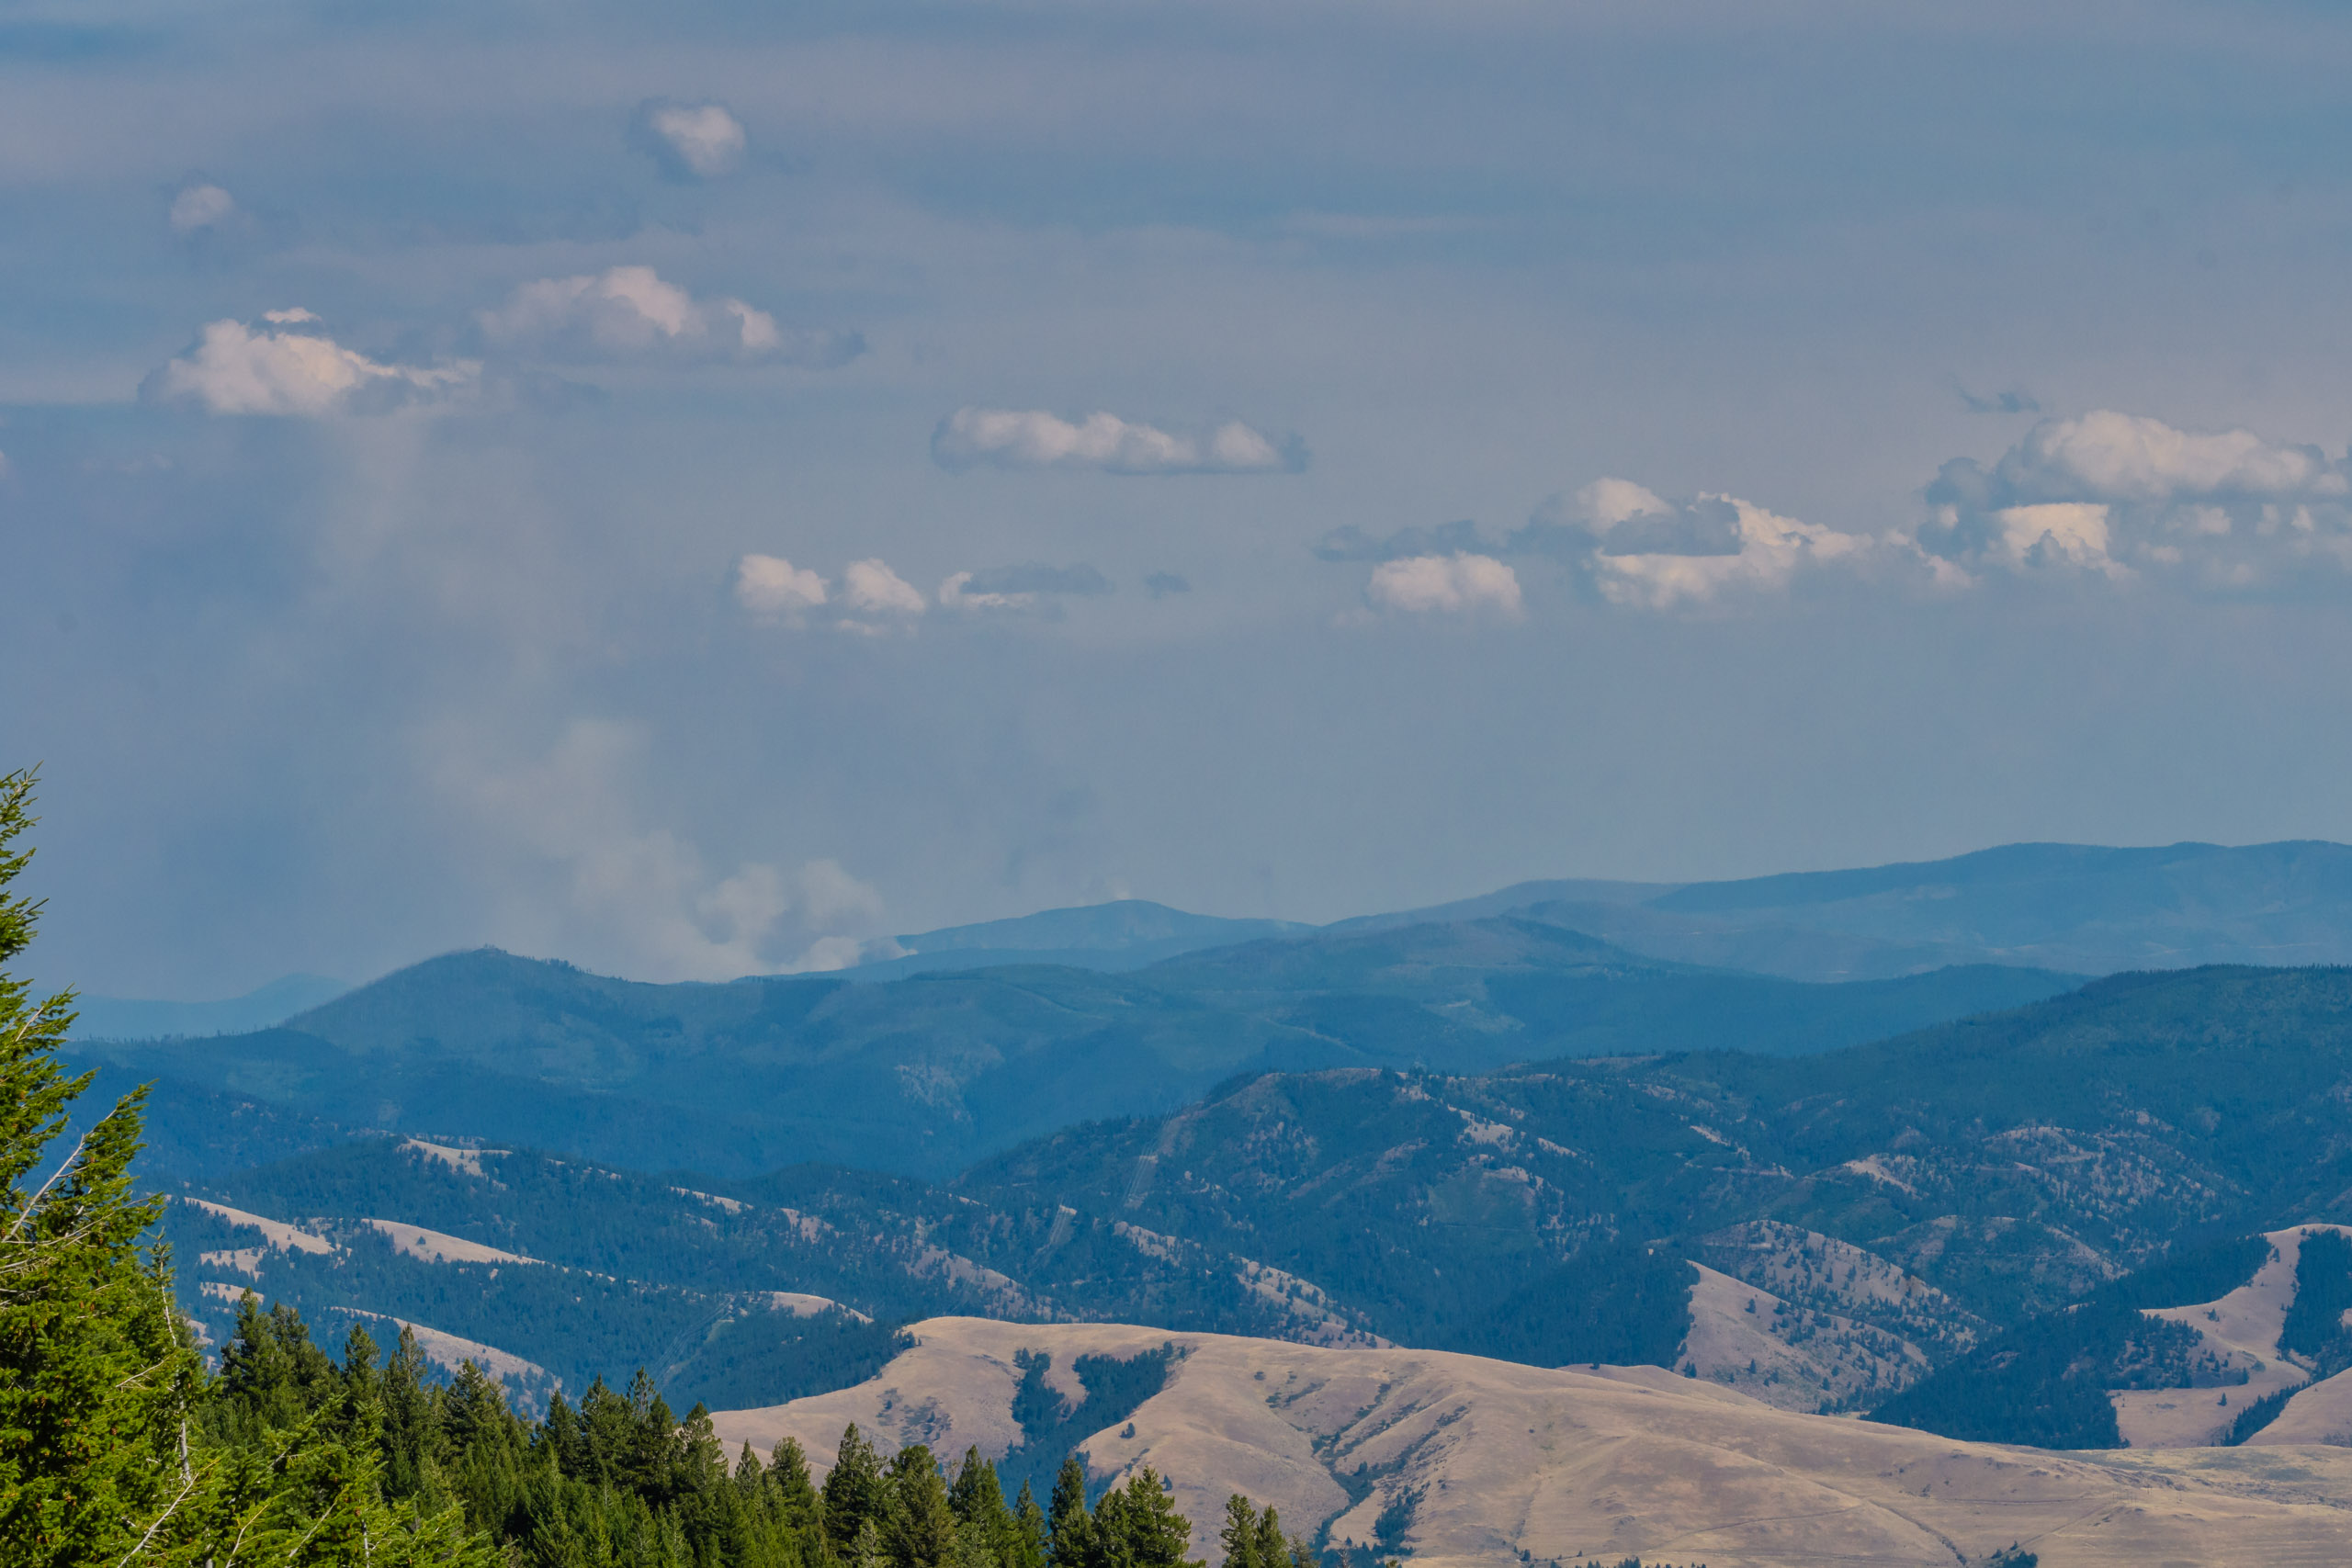 Smoke of the Goat Creek fire